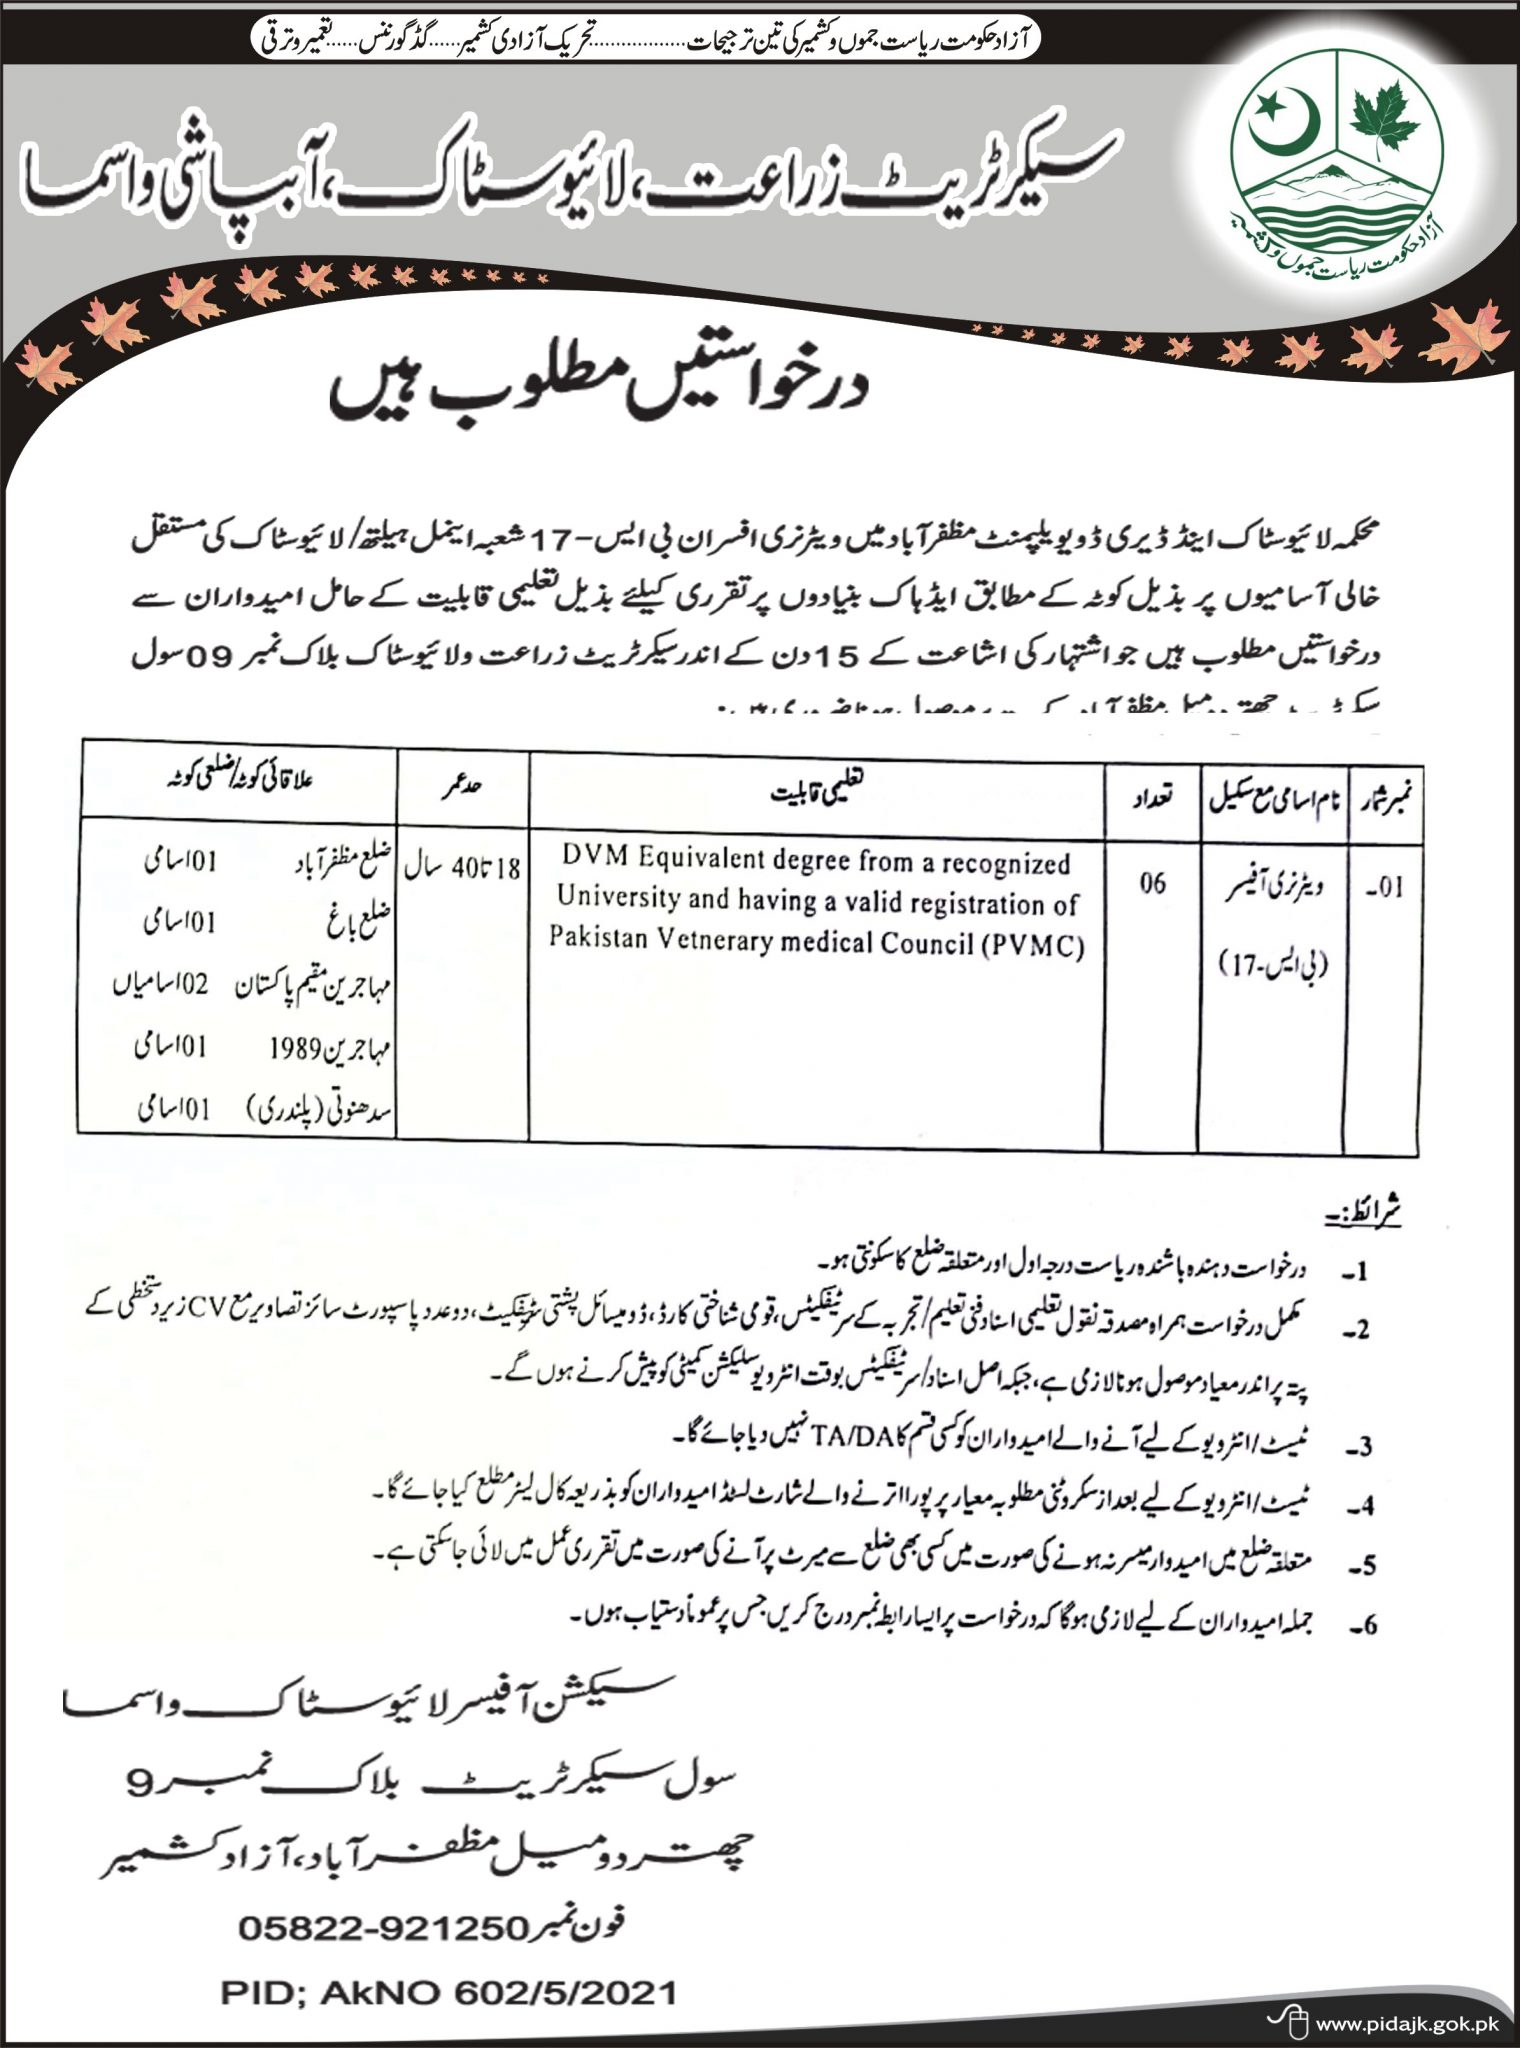 Applications are required for permanent posts of Veterinary Officers in Livestock and Dairy Development Department